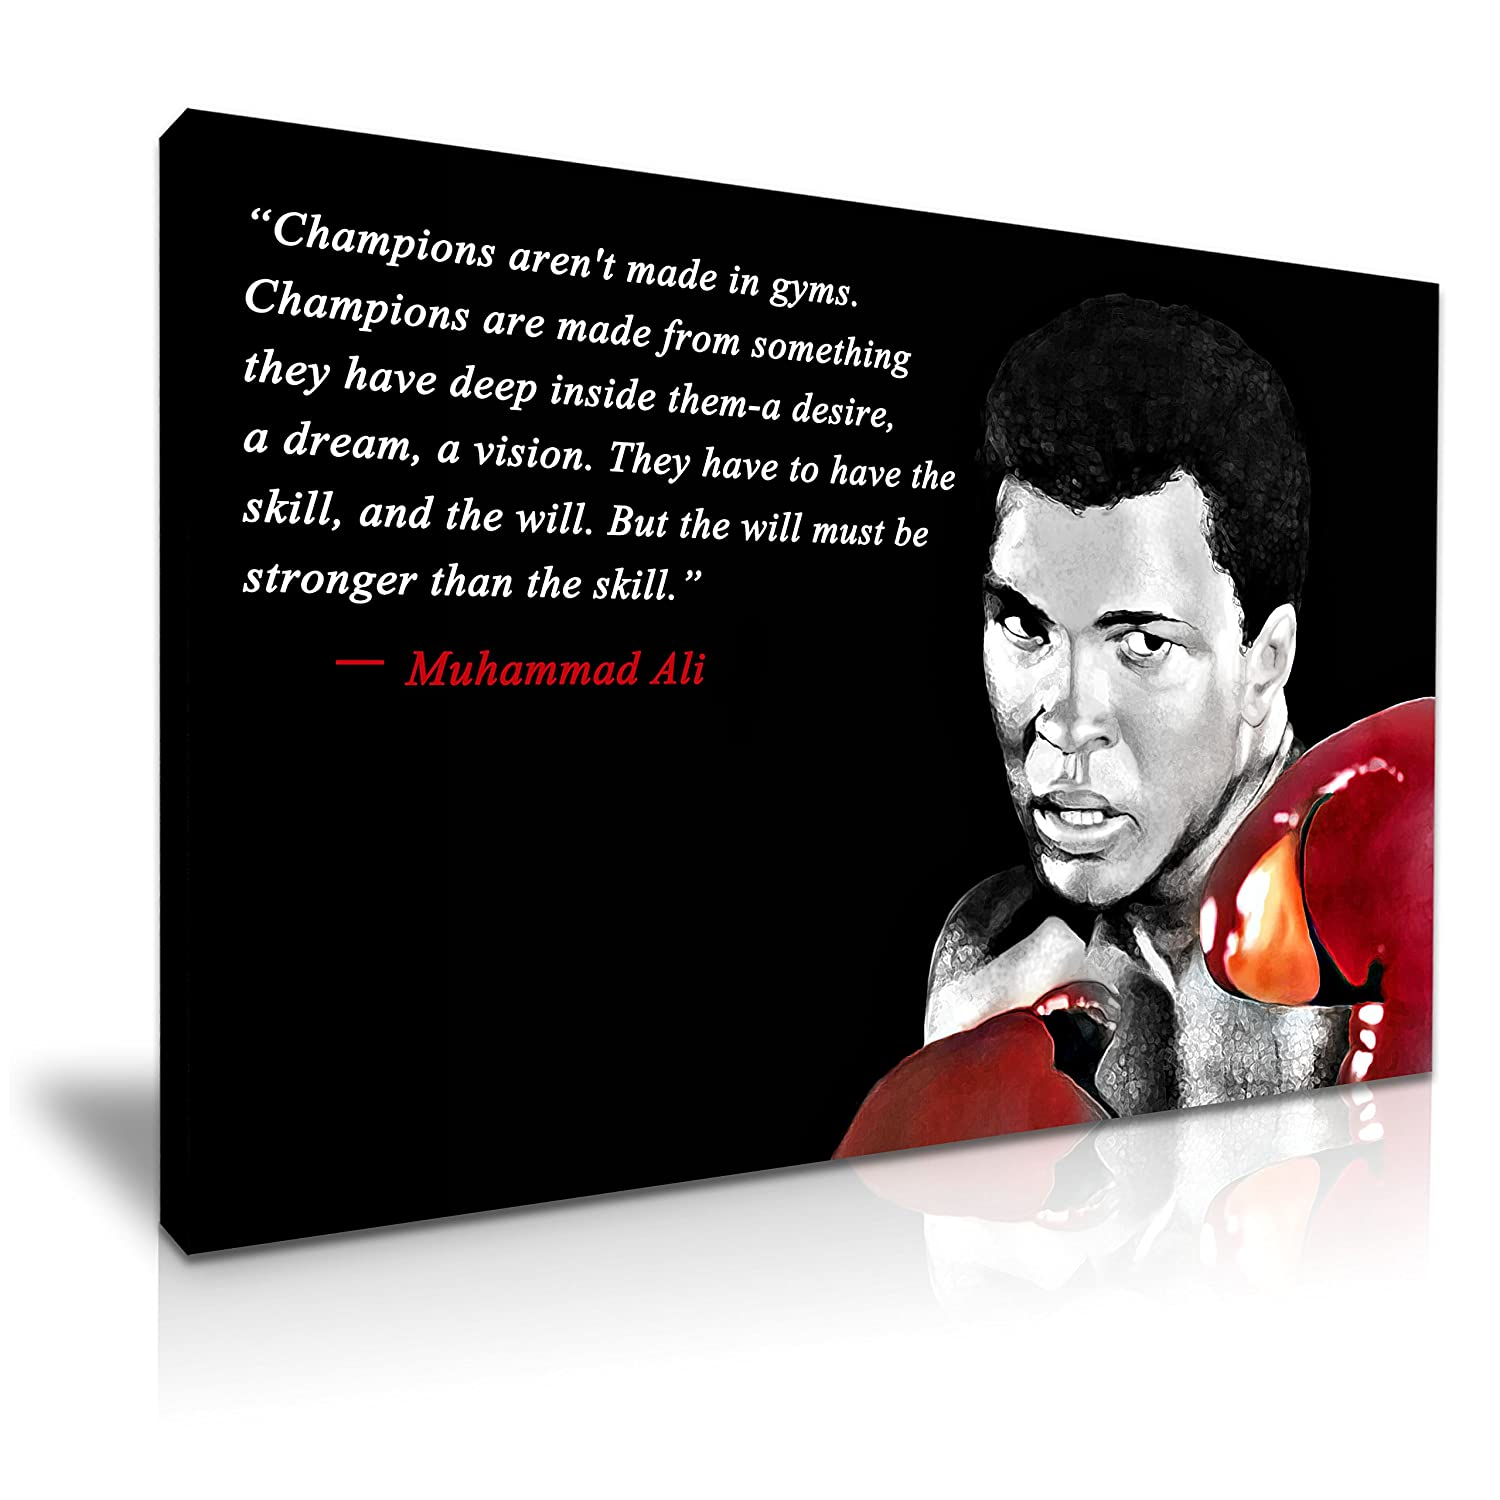 Muhammad Ali Boxing Sports Quote Canvas Wall Art Picture Print A1 Size 76cmx50cm